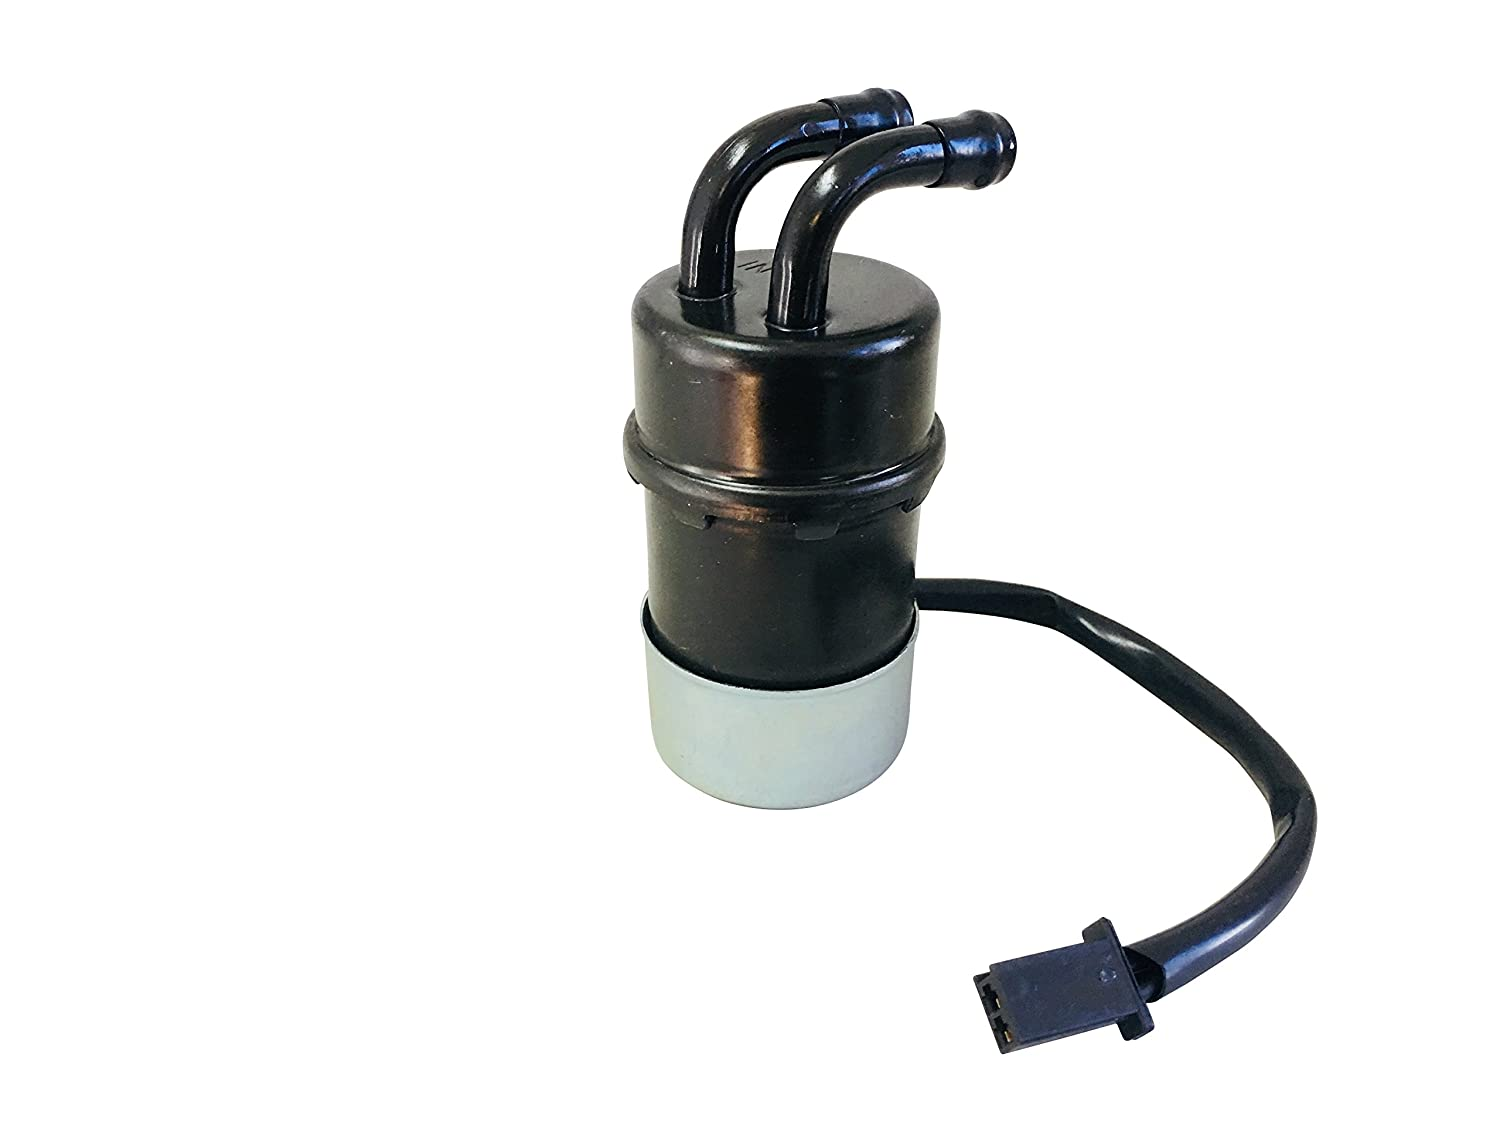 Fuel Pump for Suzuki VS700 Intruder VS1400 Replace OE #15100-38A00 (2 wires  plug)